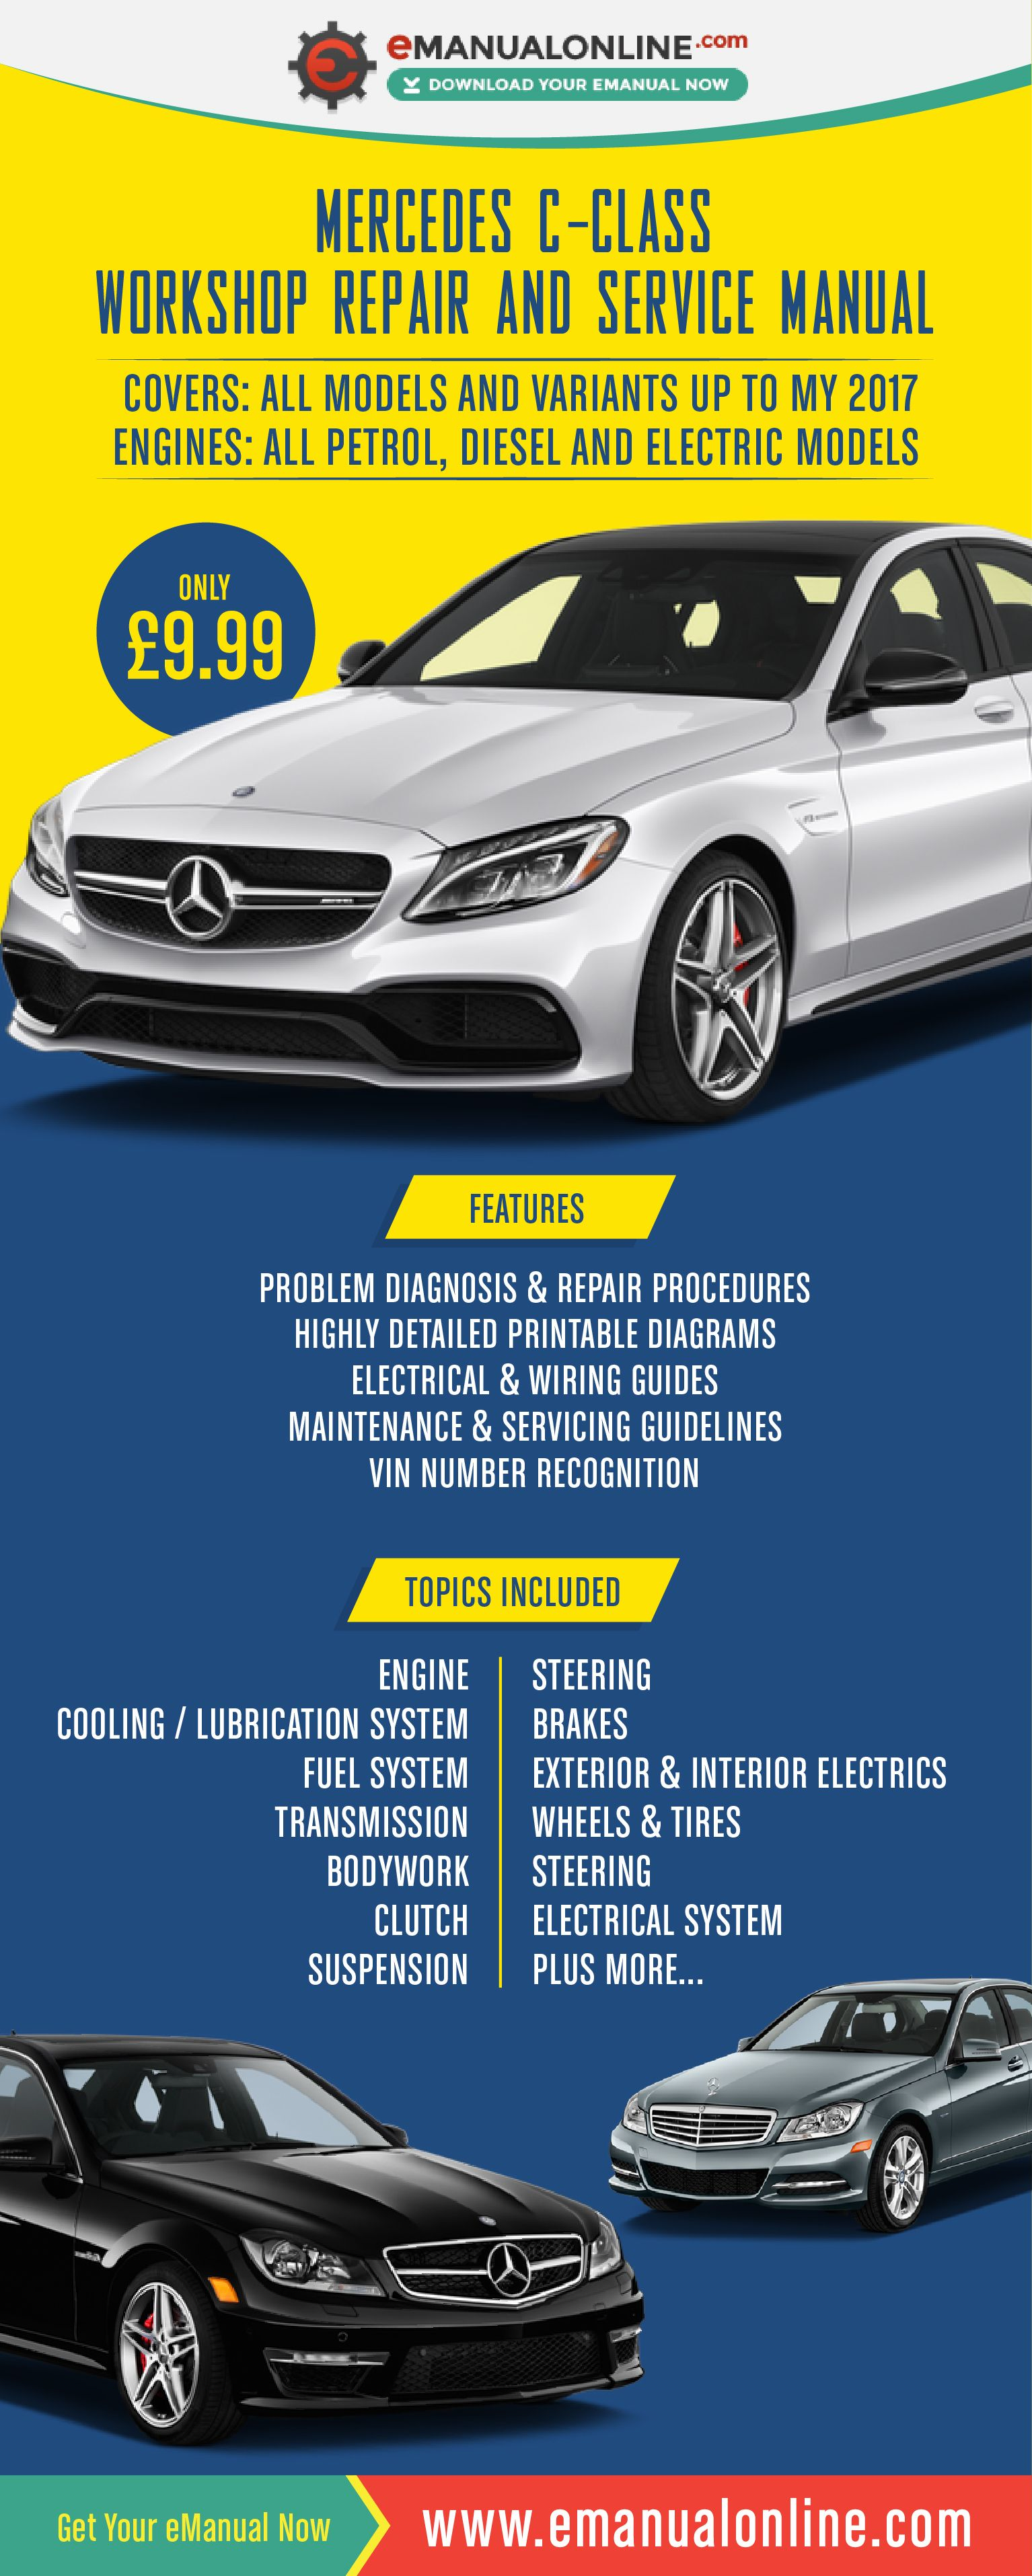 Mercedes C-Class Workshop Repair And Service Manual. The detailed  information contained within this workshop manual is quite simply stunning.